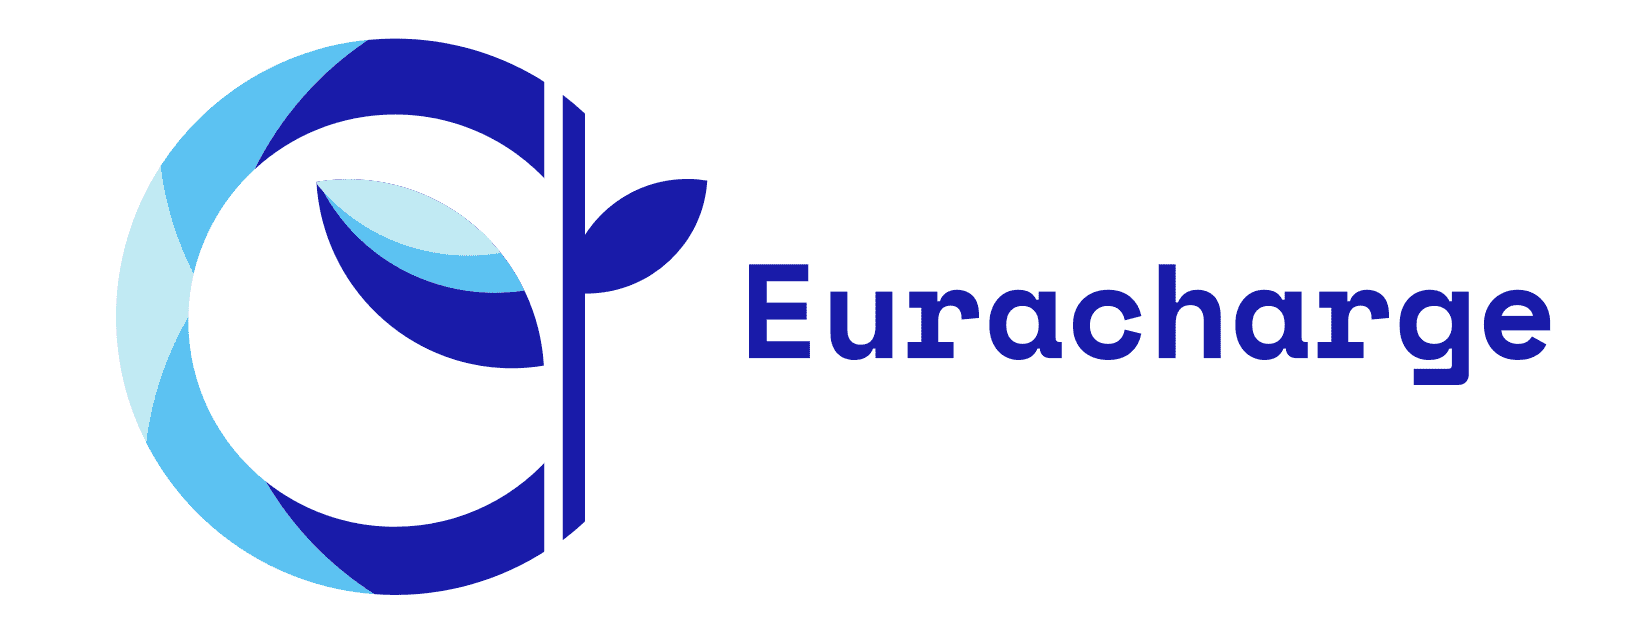 Euracharge Coupons and Promo Code